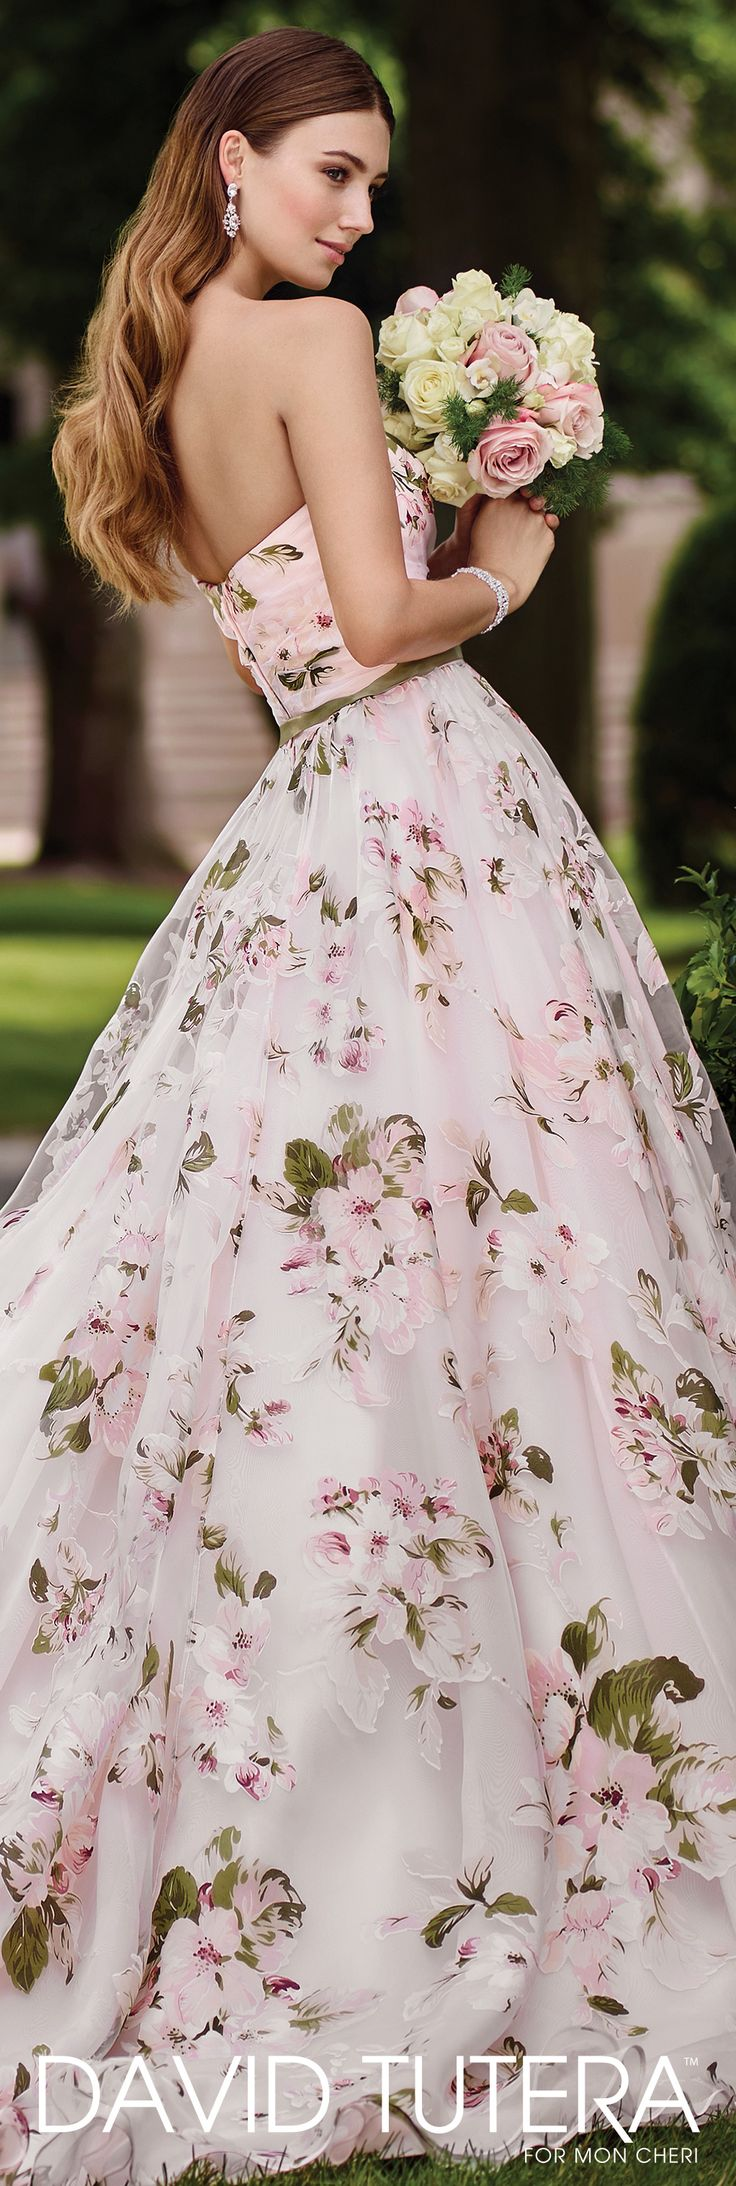 669 best images about david tutera for mon cheri on for Floral dresses for weddings